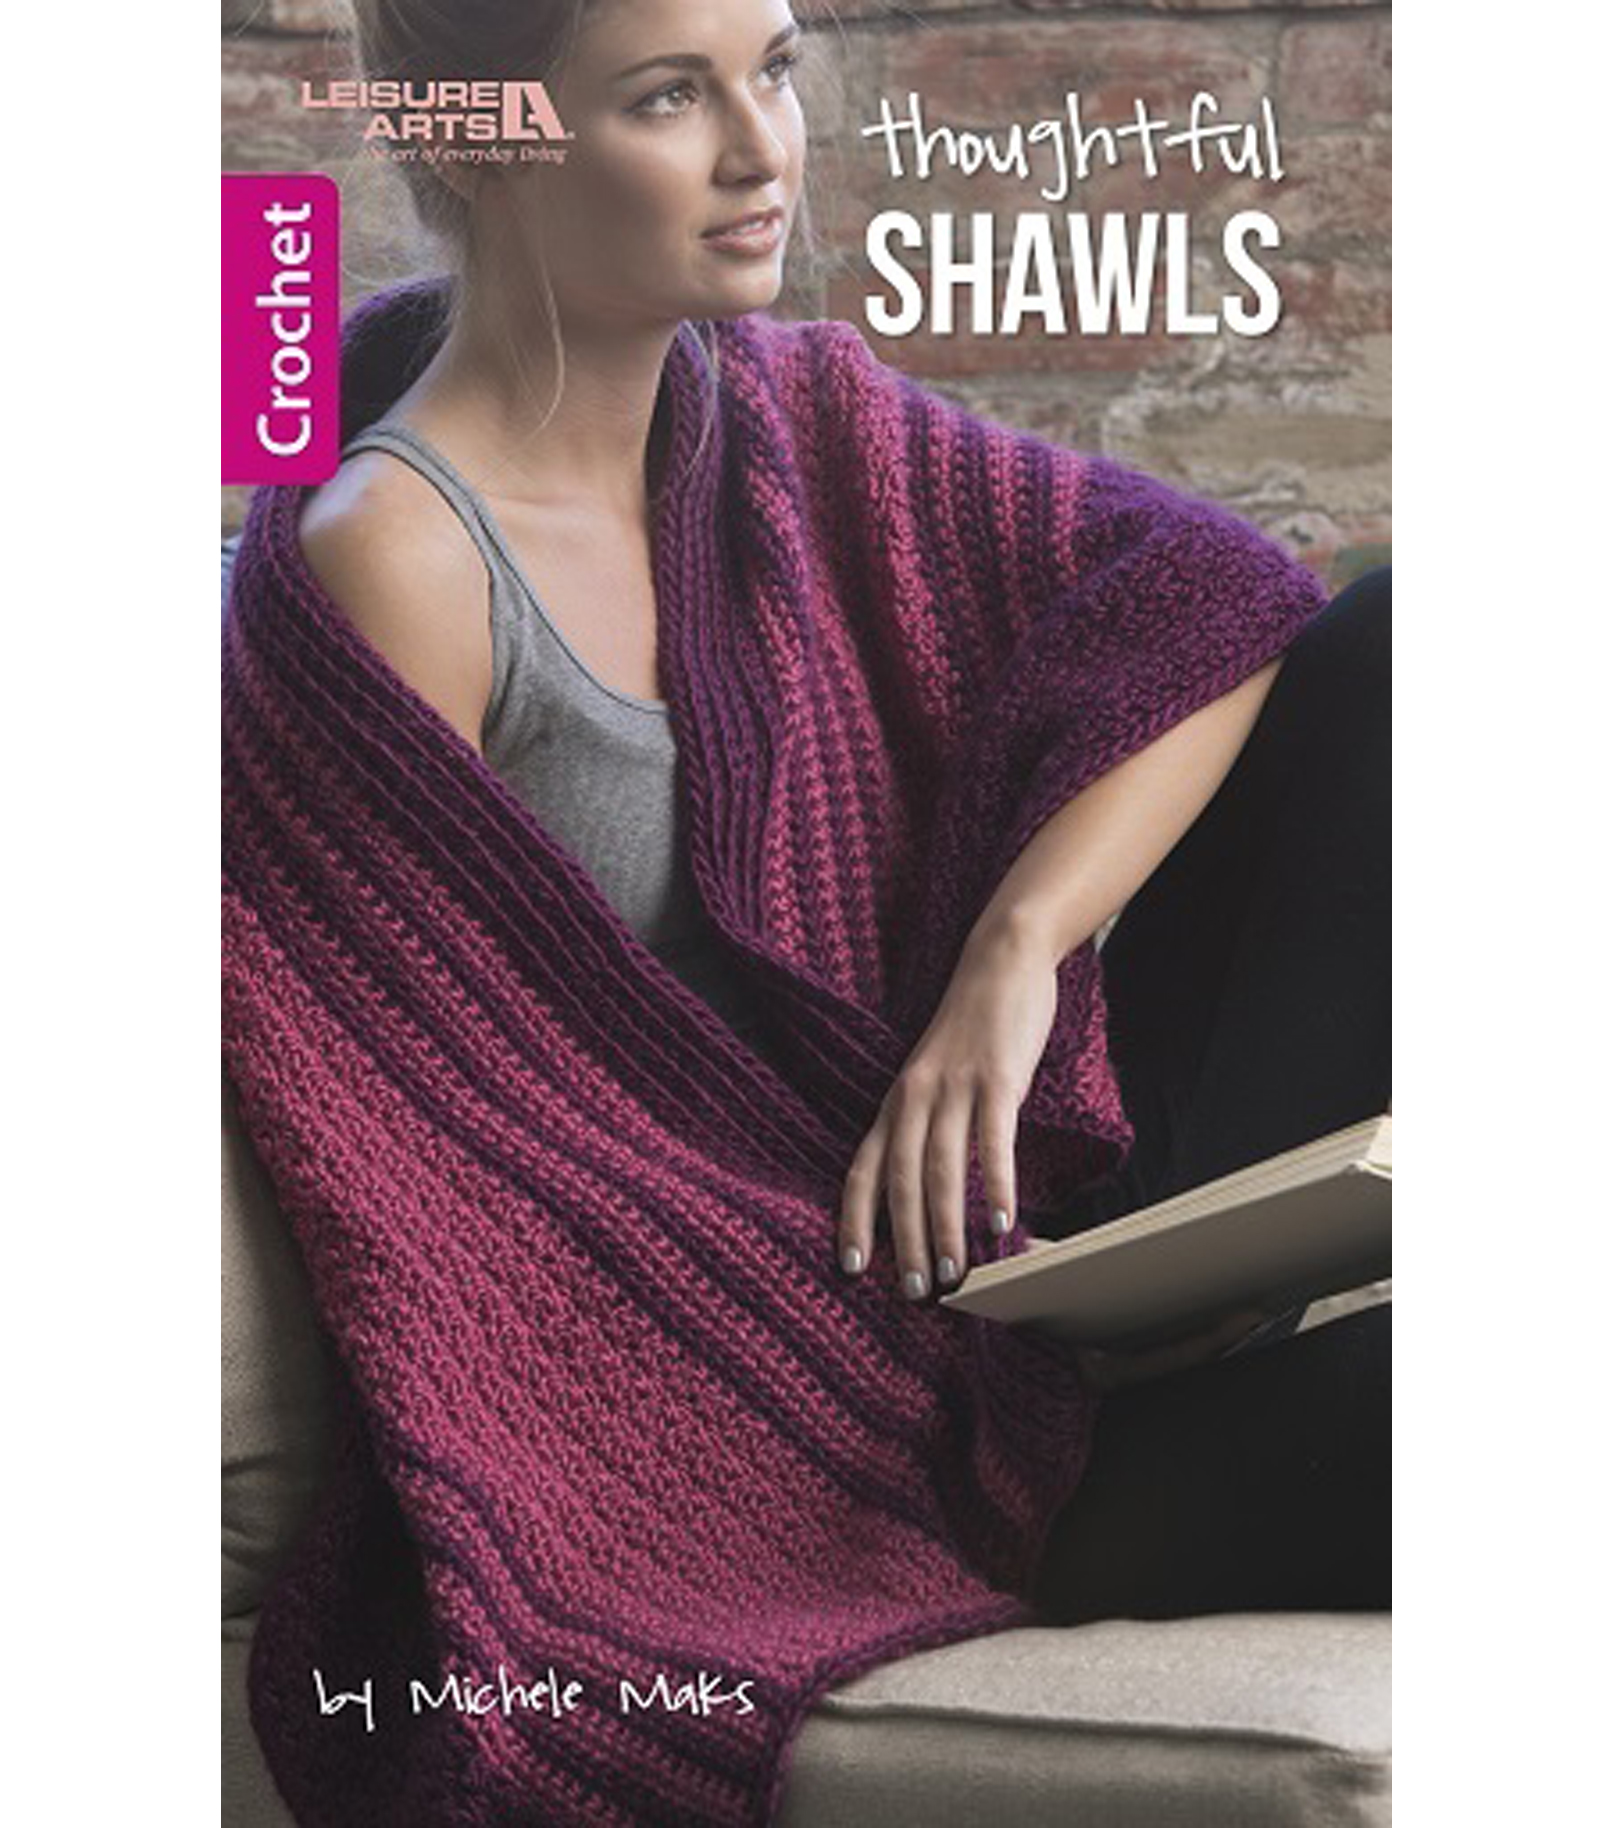 Thoughtful Shawls Crochet Book